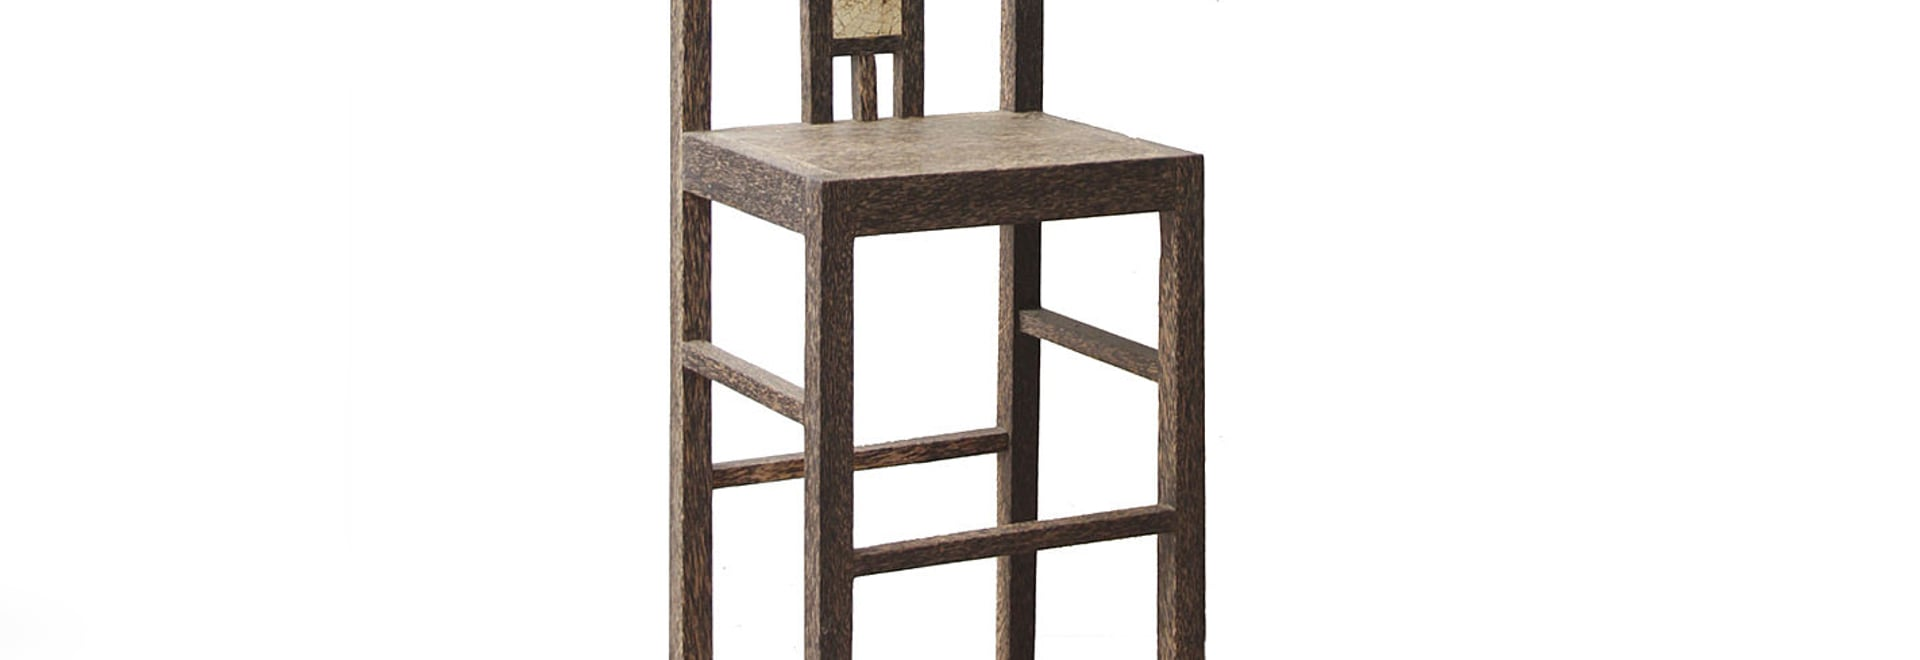 BAR STOOL WITH MOSAIC INLAY